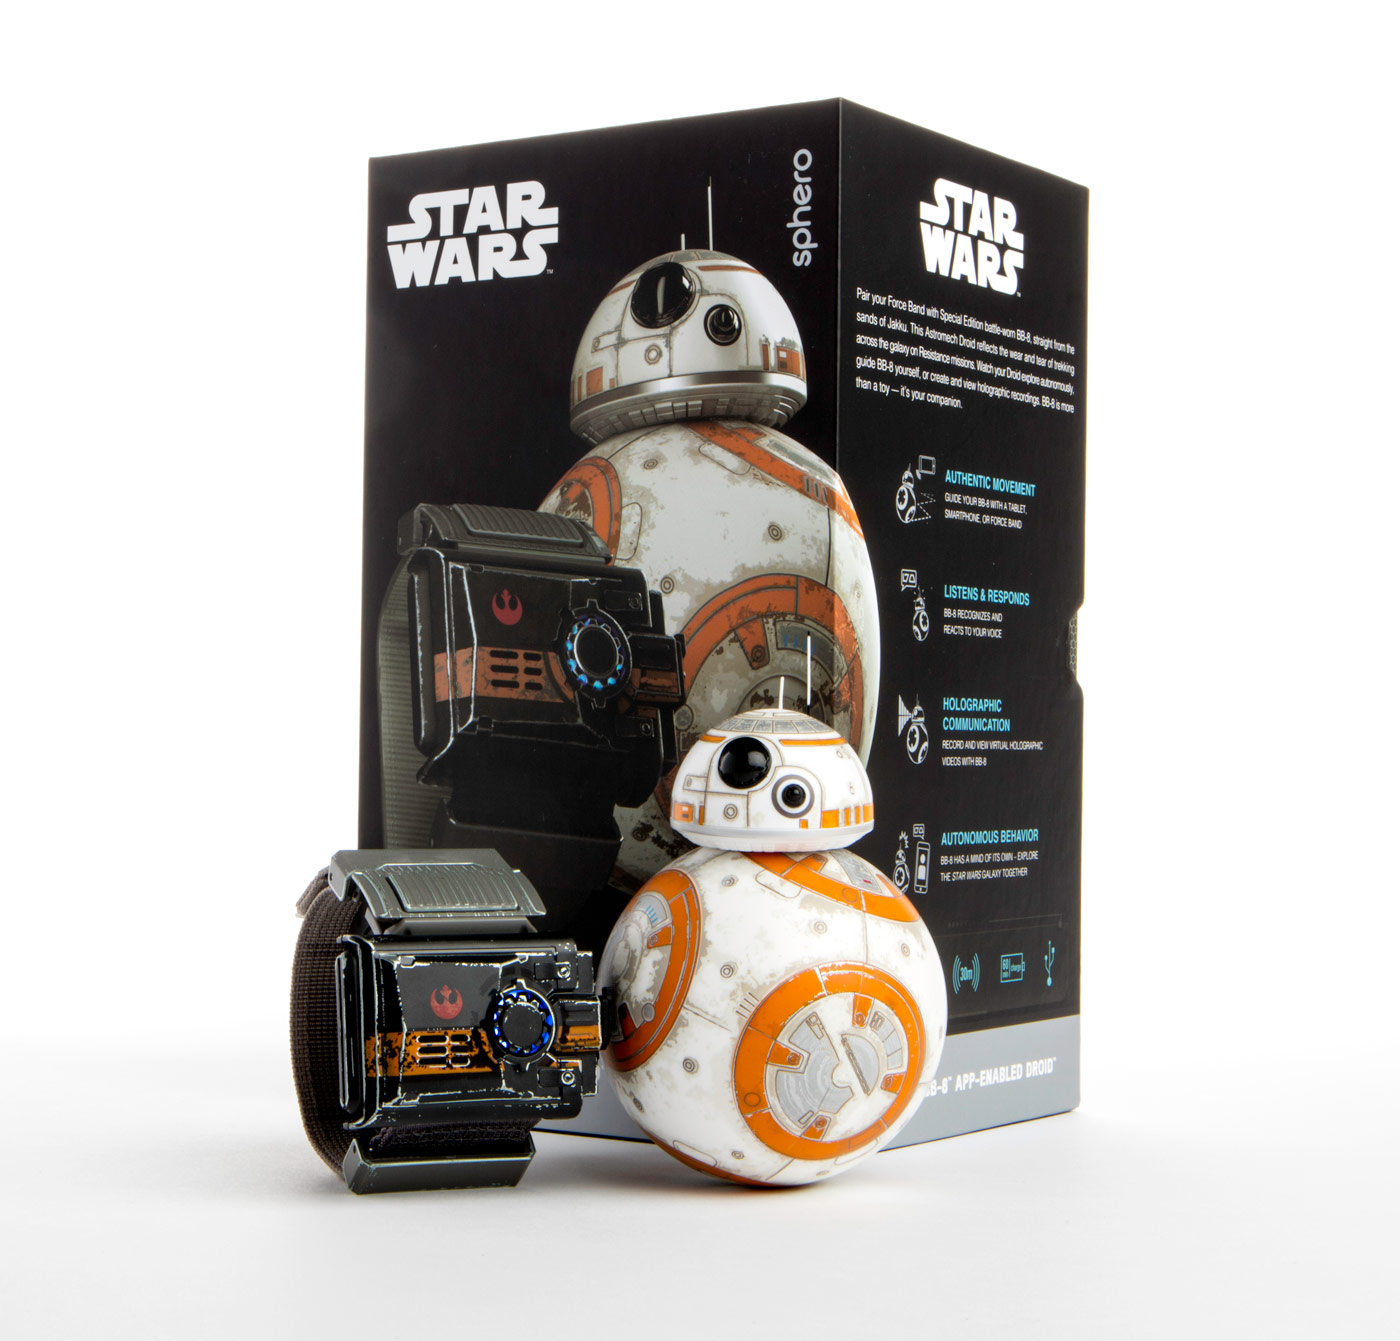 Go Rogue Pre-Order: Star Wars Force Band and Special Edition Battle-Worn BB-8 Droid Bundle